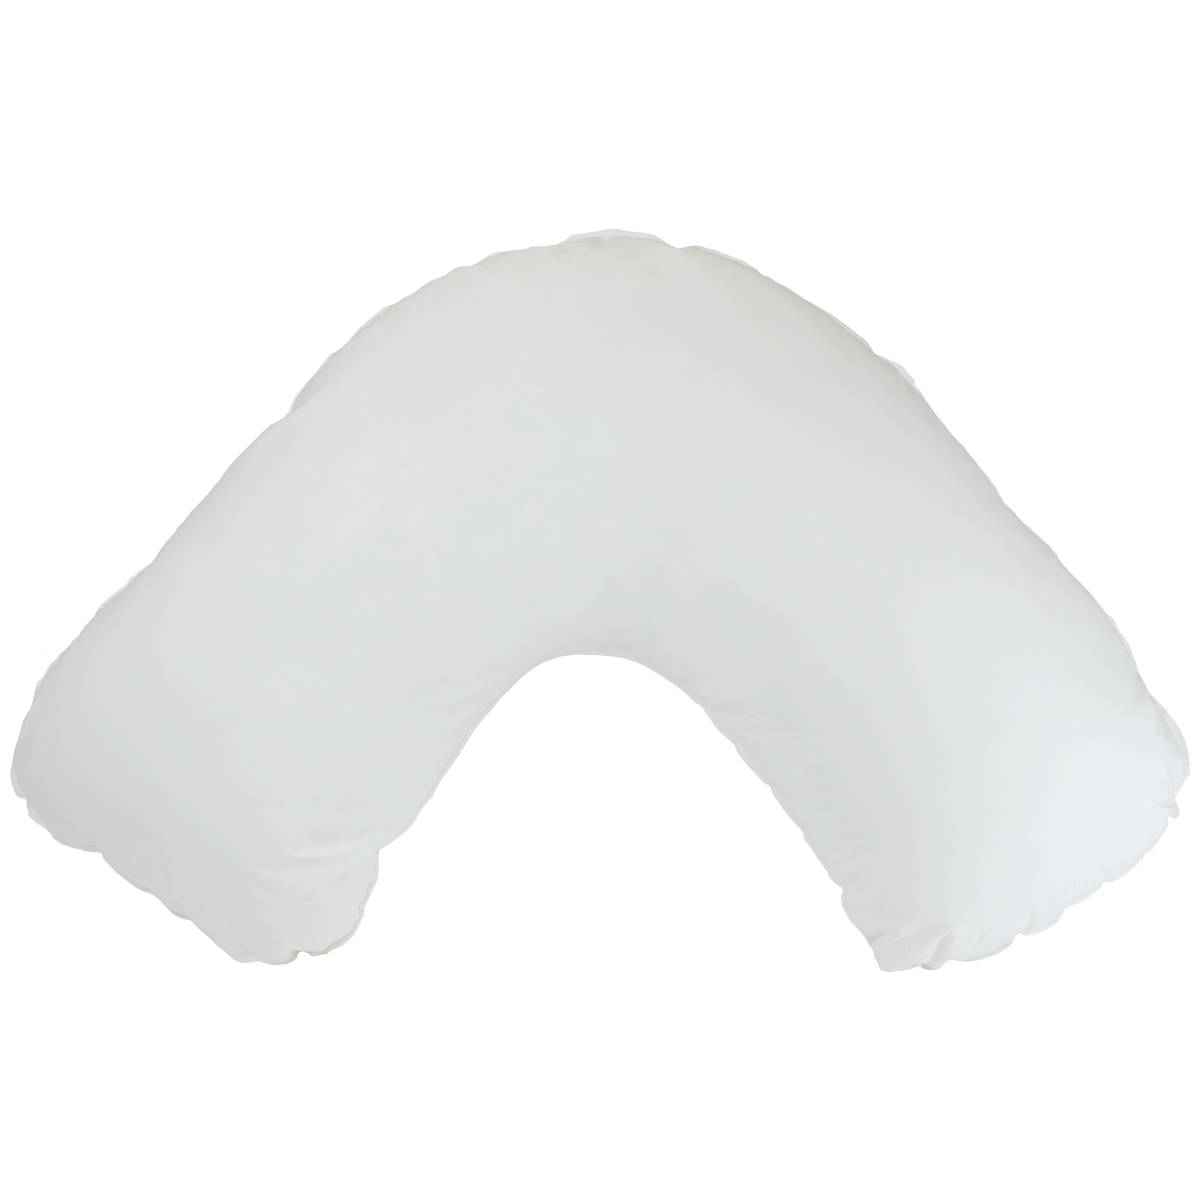 Easyrest Cloud Support U Shape Boomerang Pillow